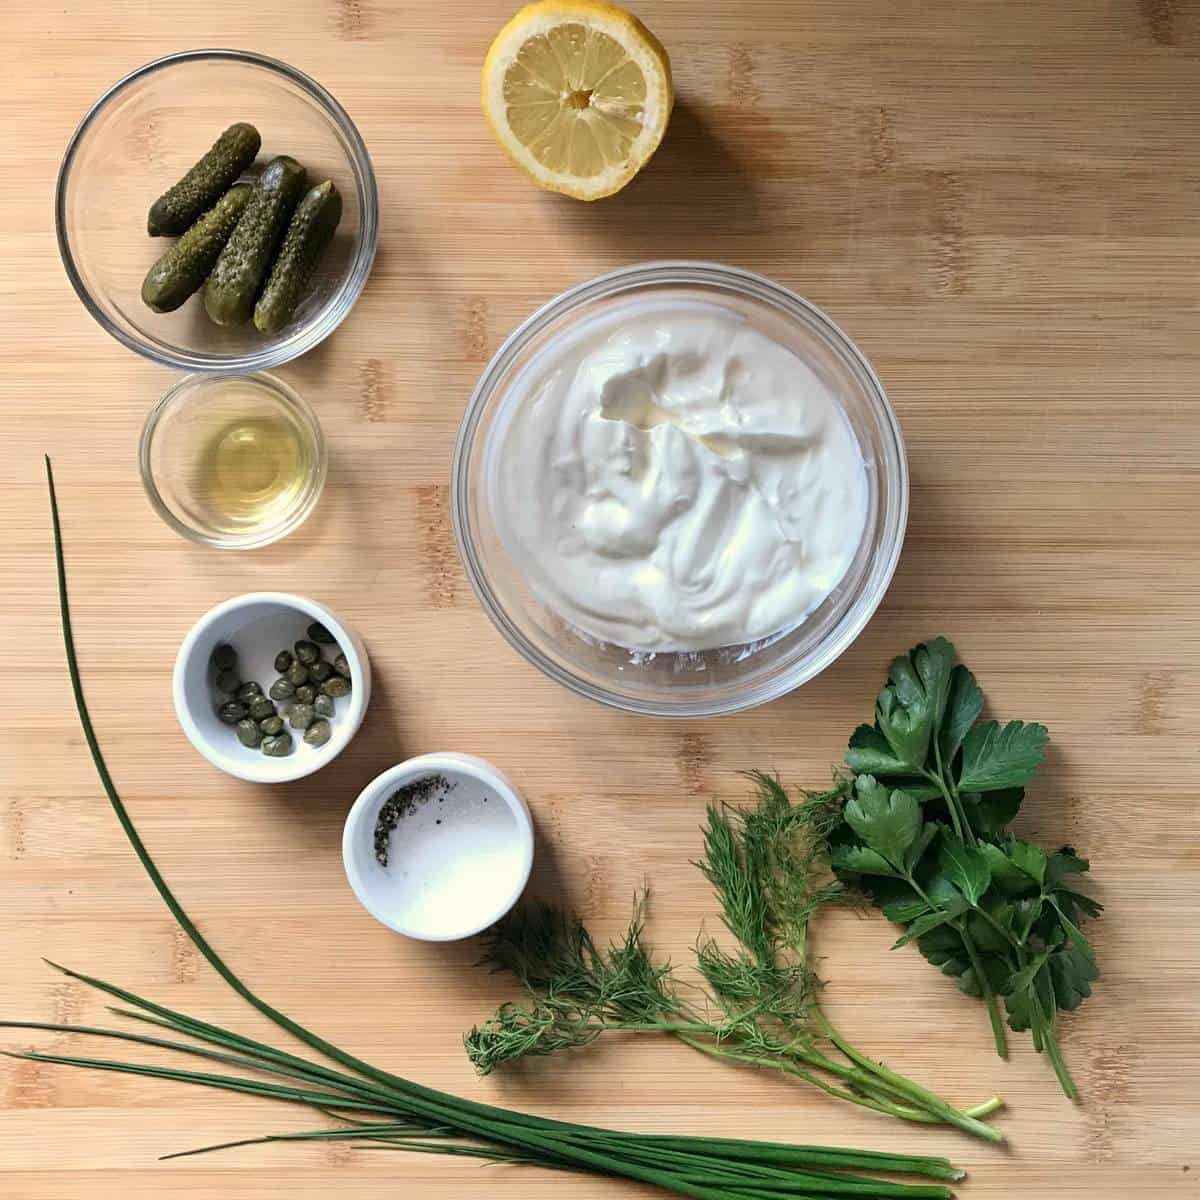 Ingredients to make tartar sauce on a wooden board.